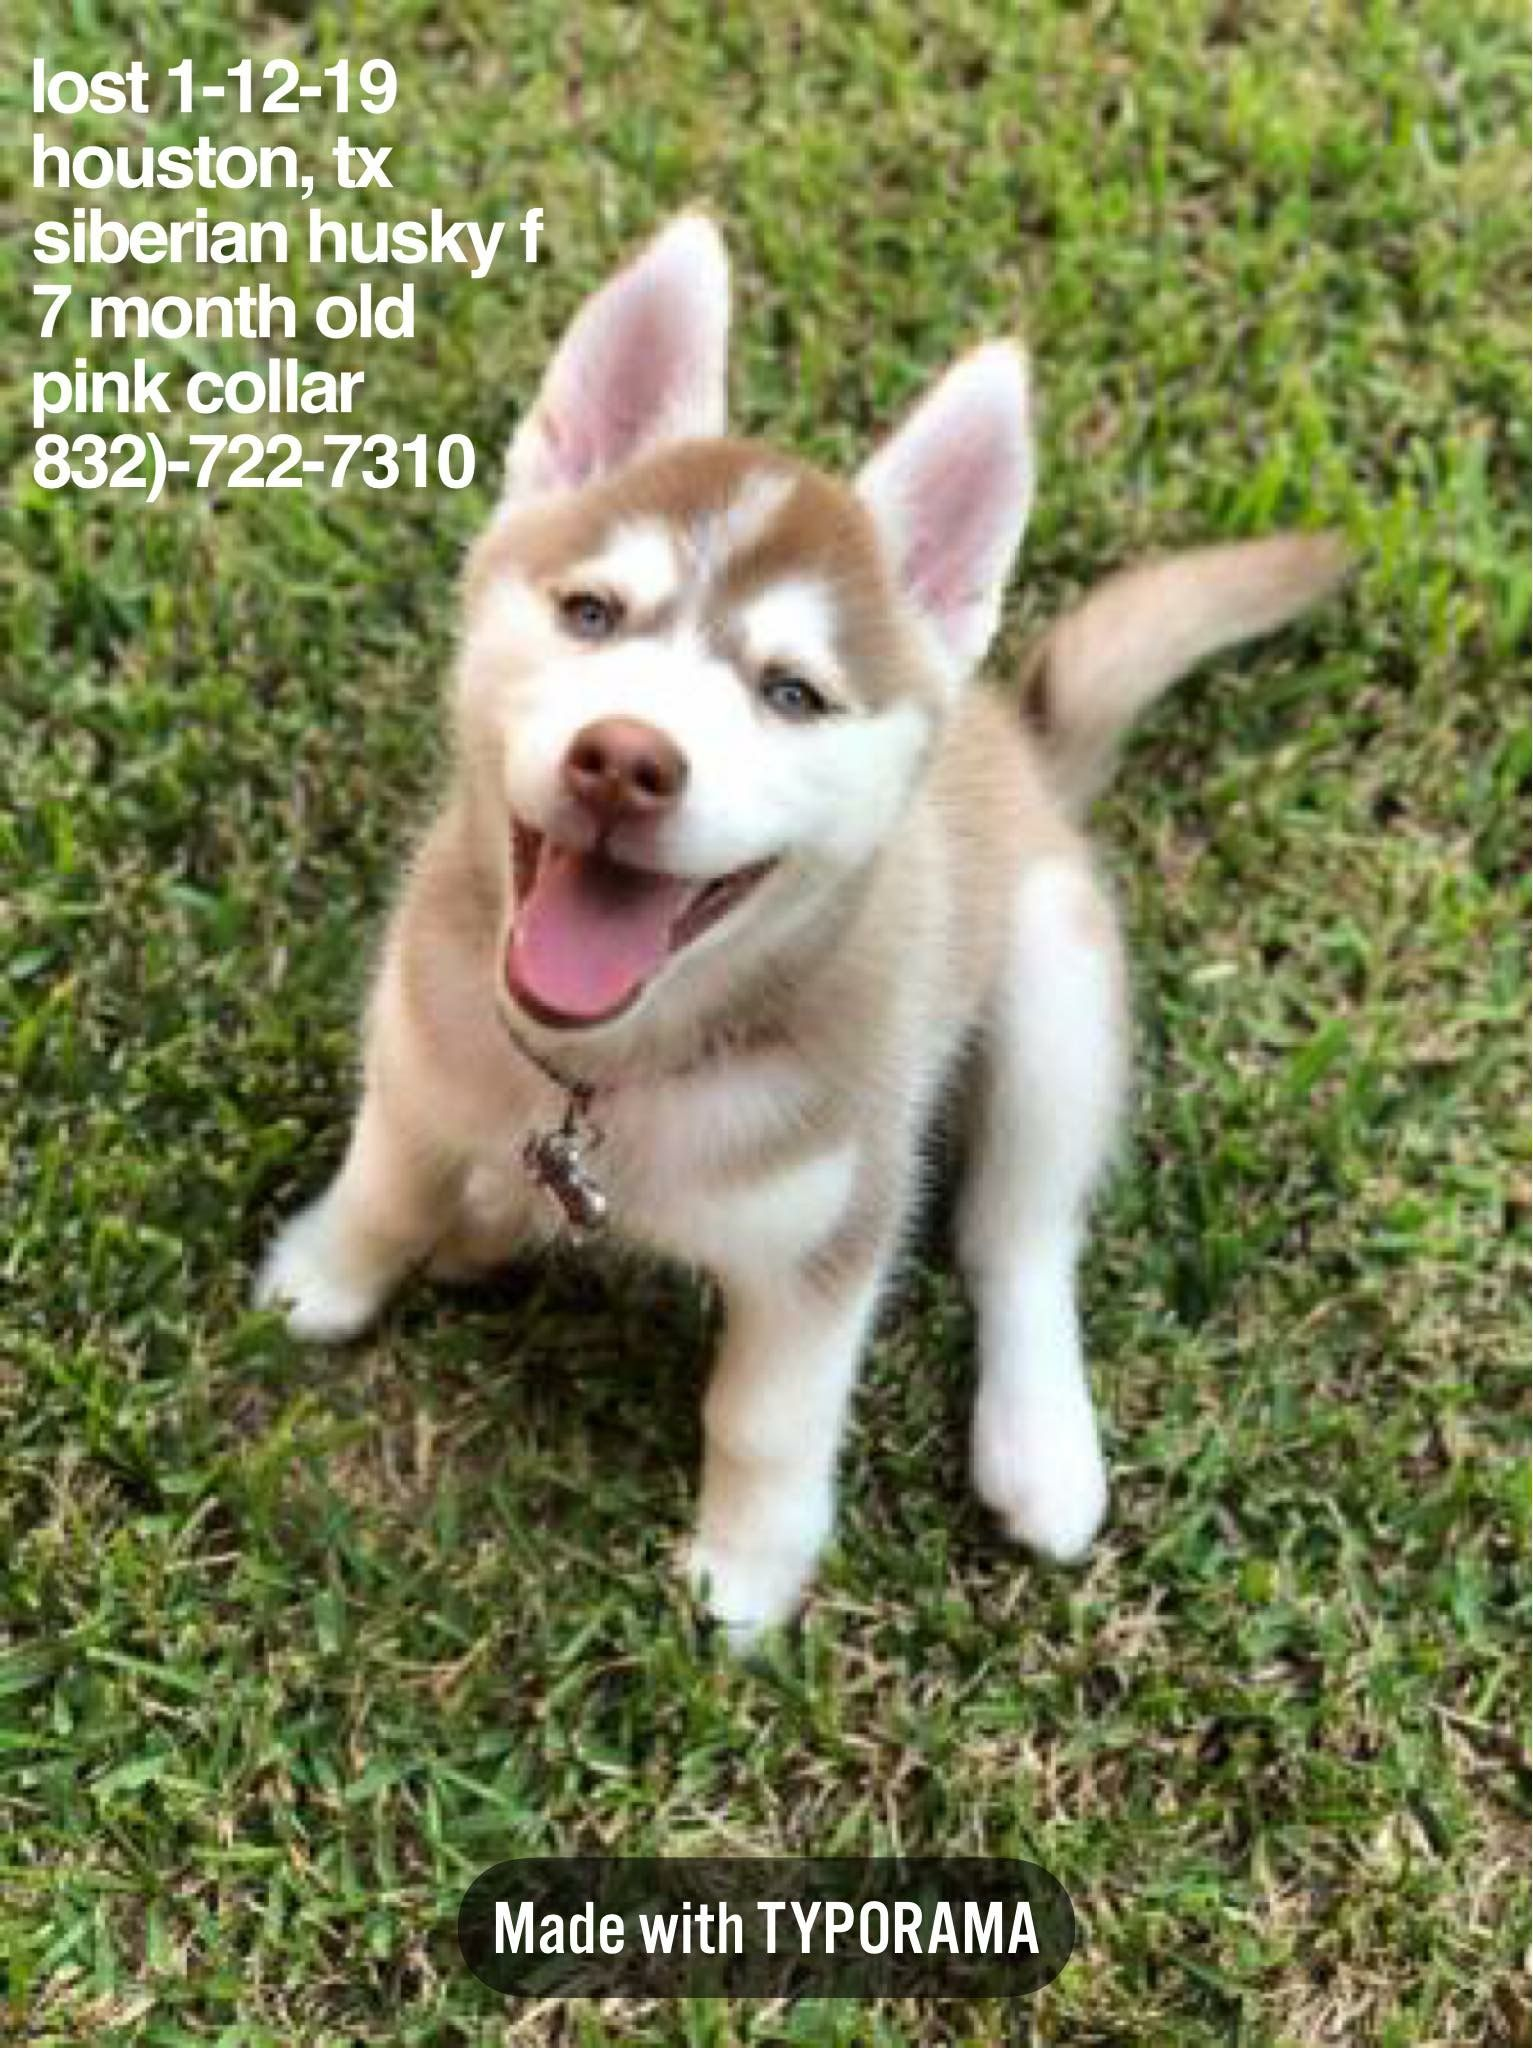 Lost 1 12 19 Houston Tx Siberianhusky 7 Month Old Female Pink